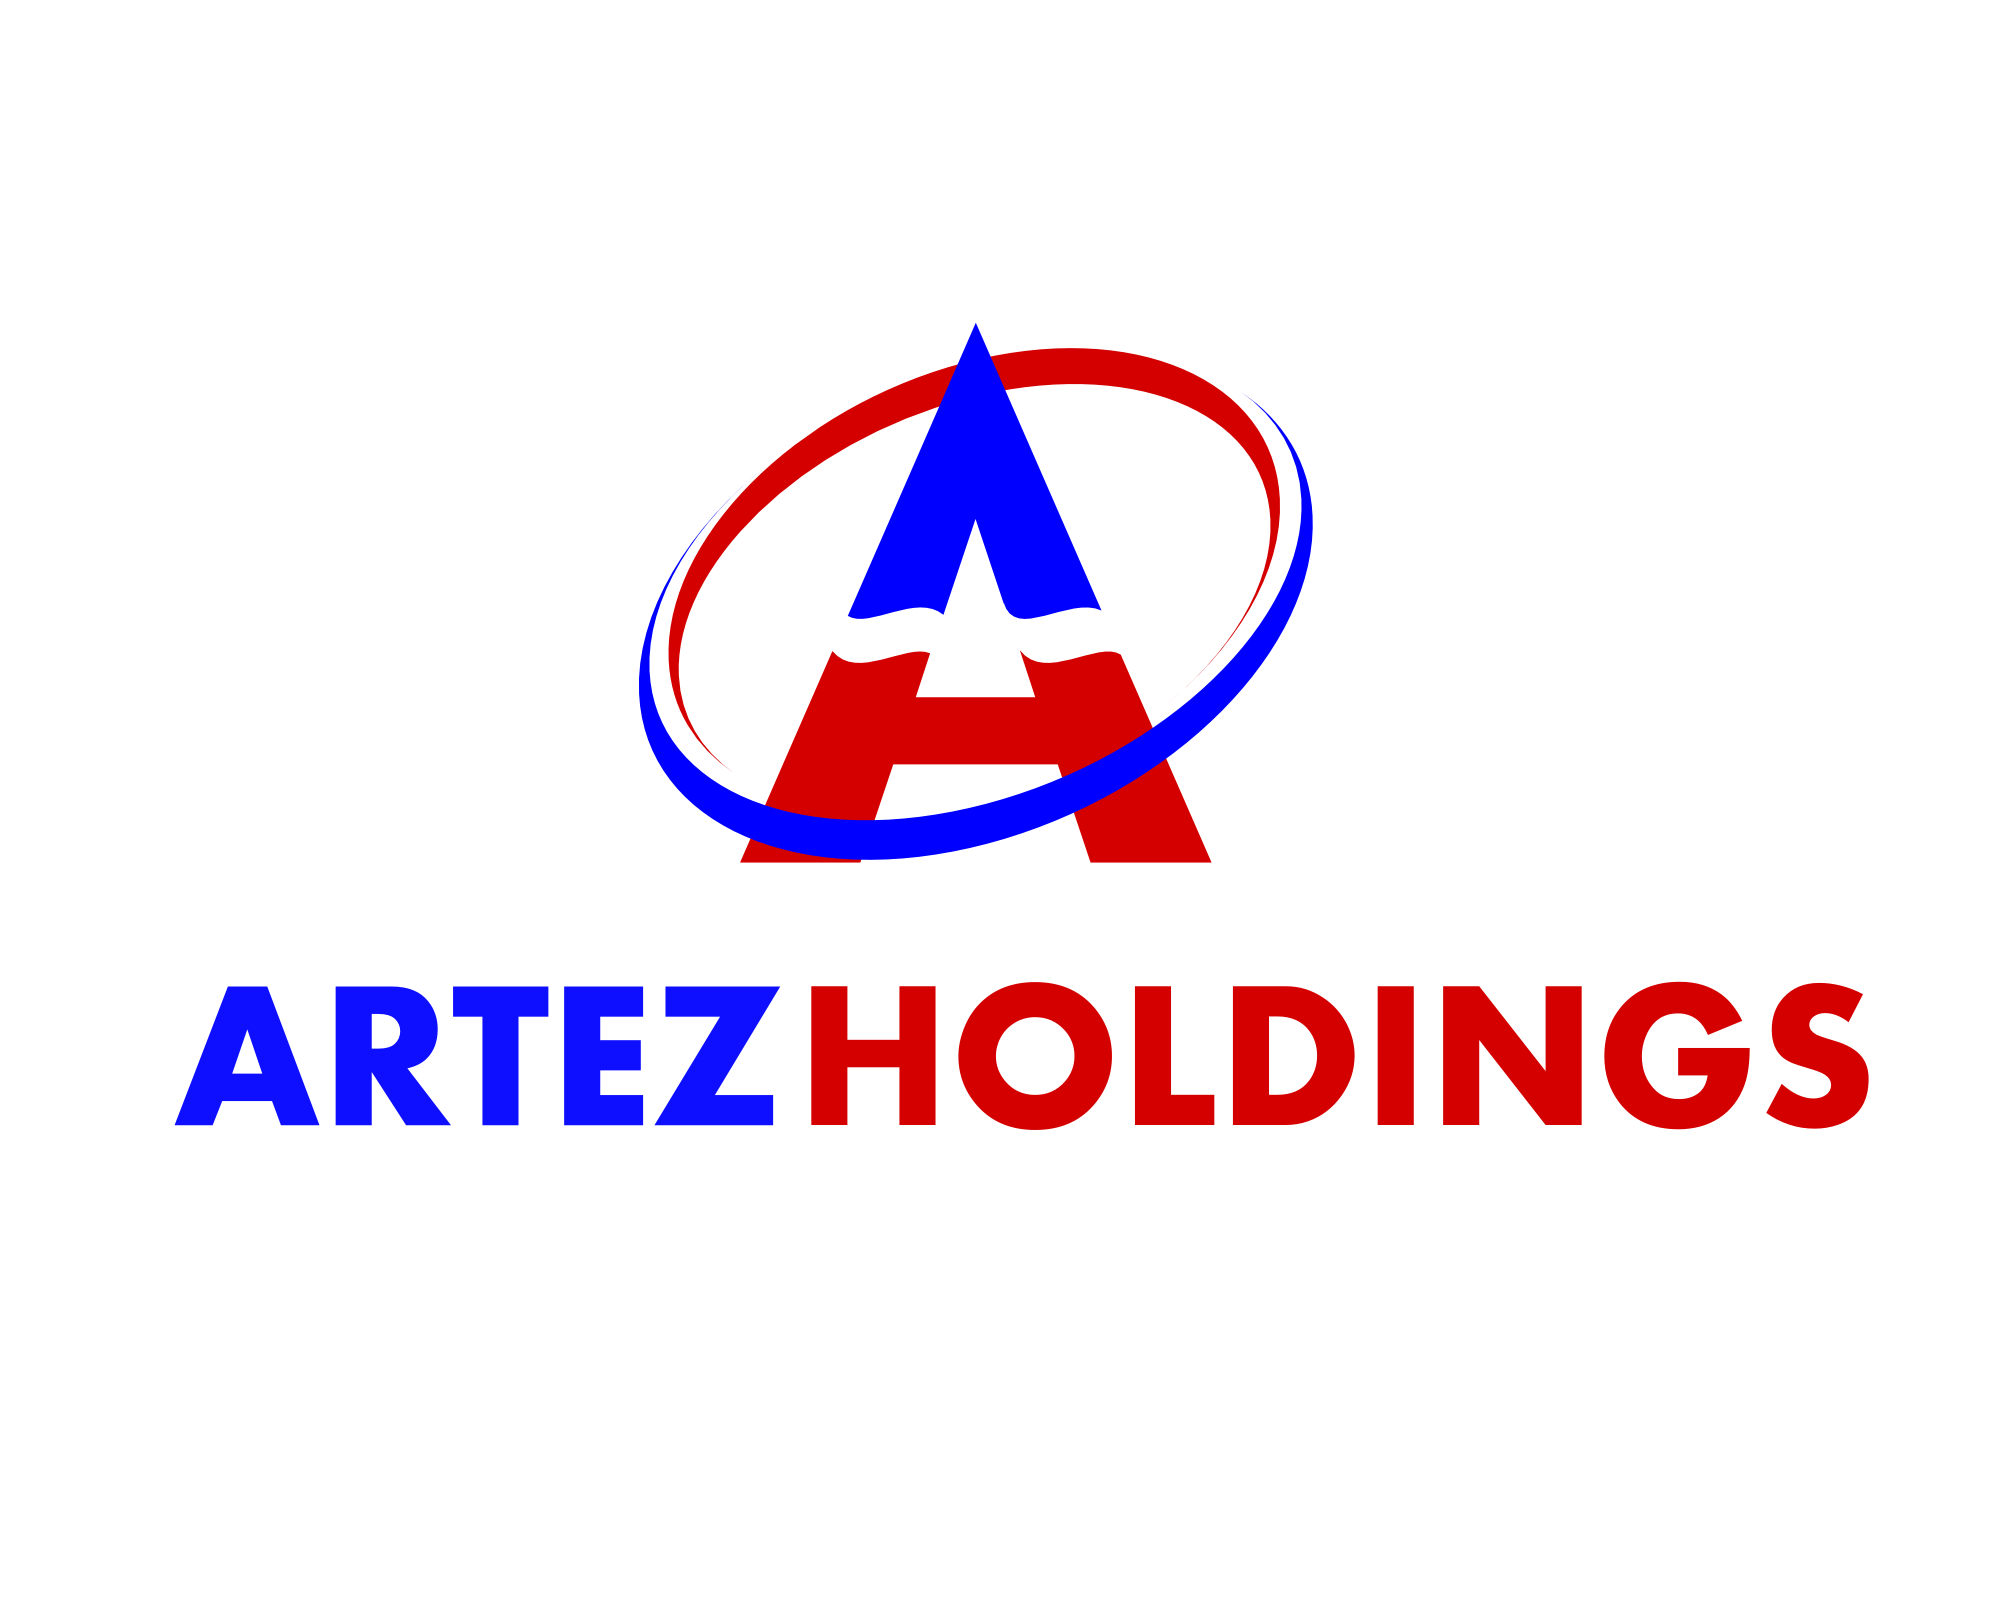 Logo Design by explogos - Entry No. 20 in the Logo Design Contest New Logo Design for Artez Holdings.